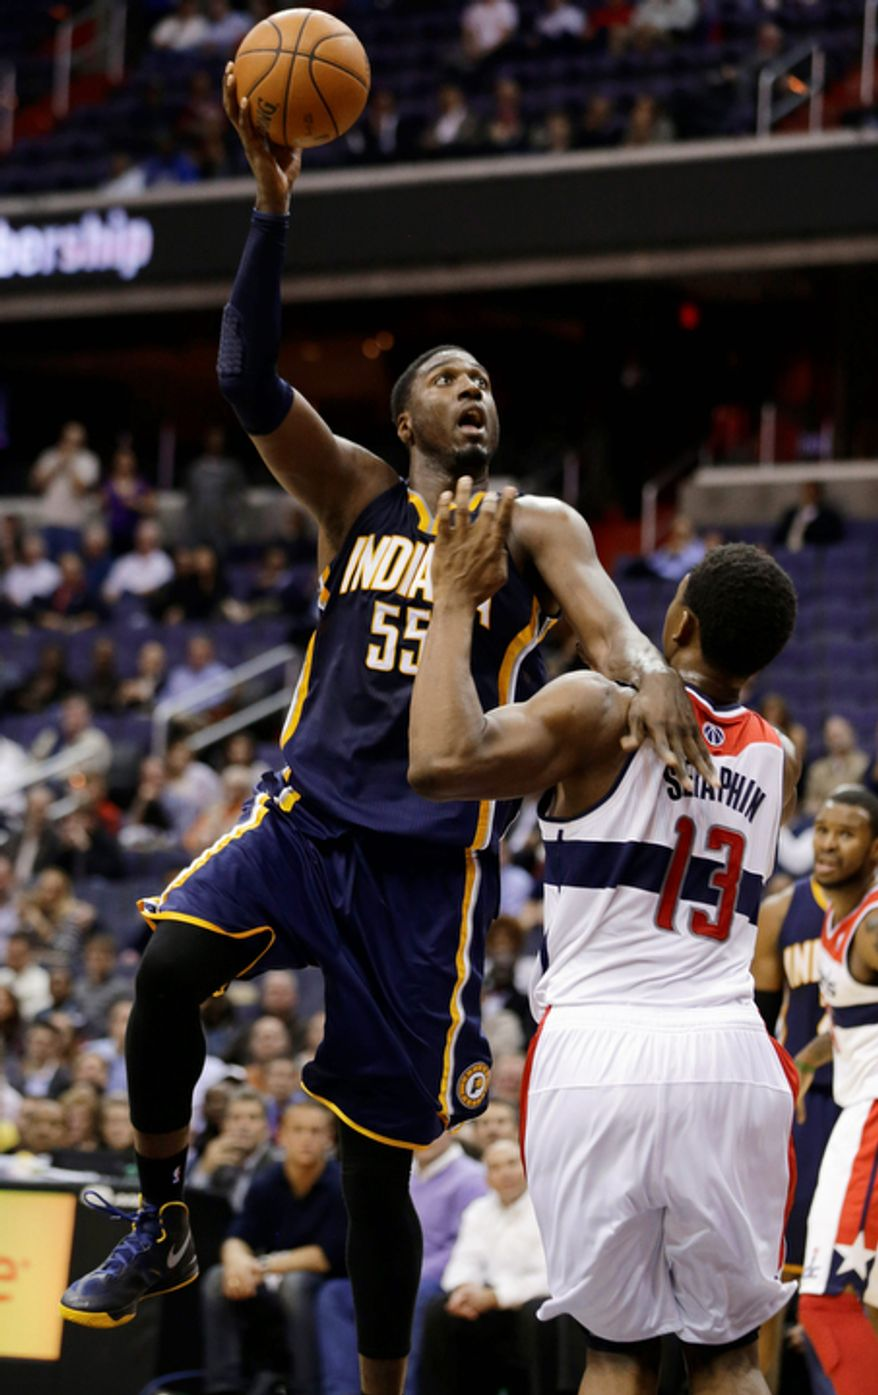 Indiana Pacers center Roy Hibbert shoots over Washington Wizards forward Kevin Seraphin during the second half of the Pacers' 96-89 road win on Nov. 19, 2012. (Associated Press)